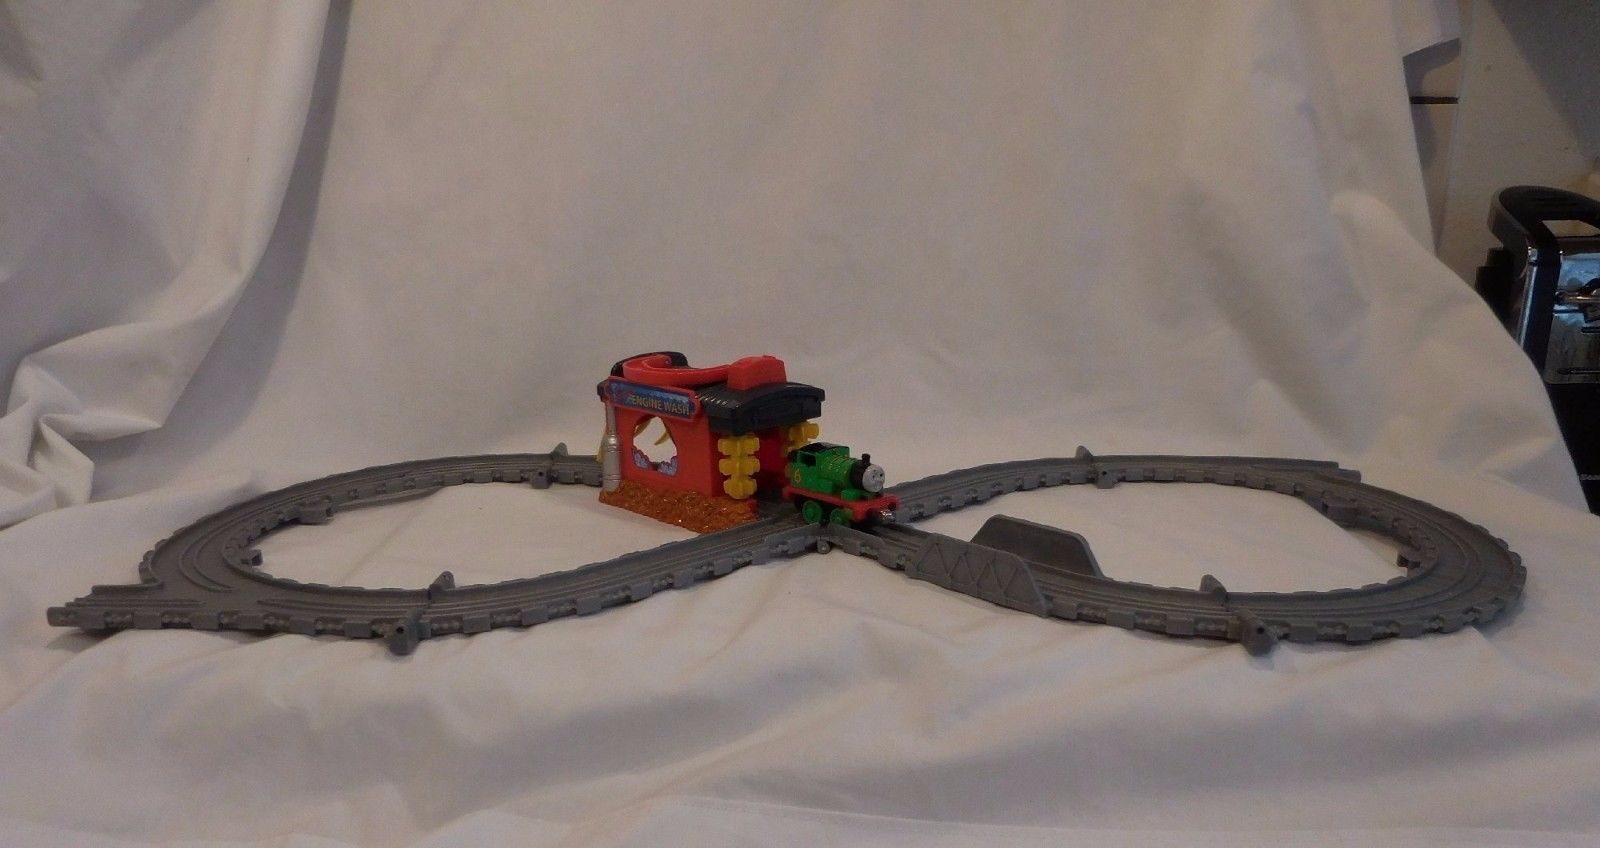 Thomas & Friends Take Along N Play Sodor Engine Wash with Train Tracks and Train